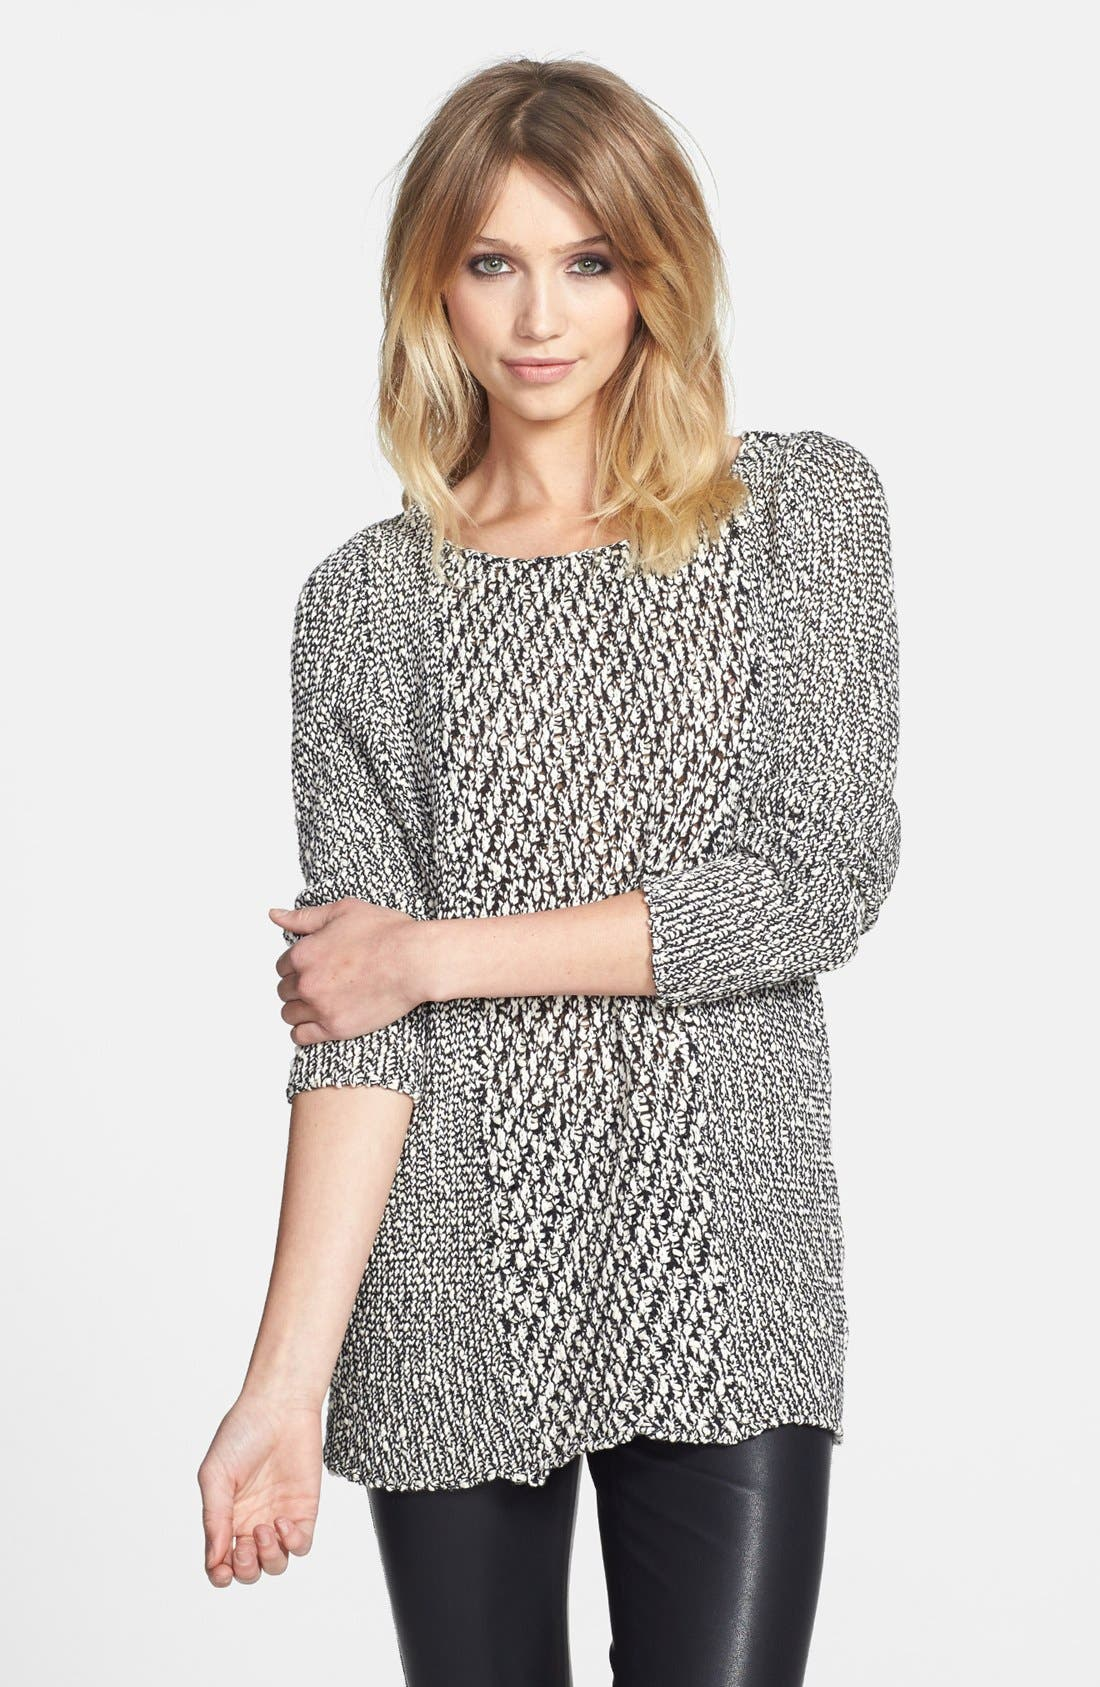 Alternate Image 1 Selected - Knot Sisters 'Dre' Mixed Knit Tunic Sweater